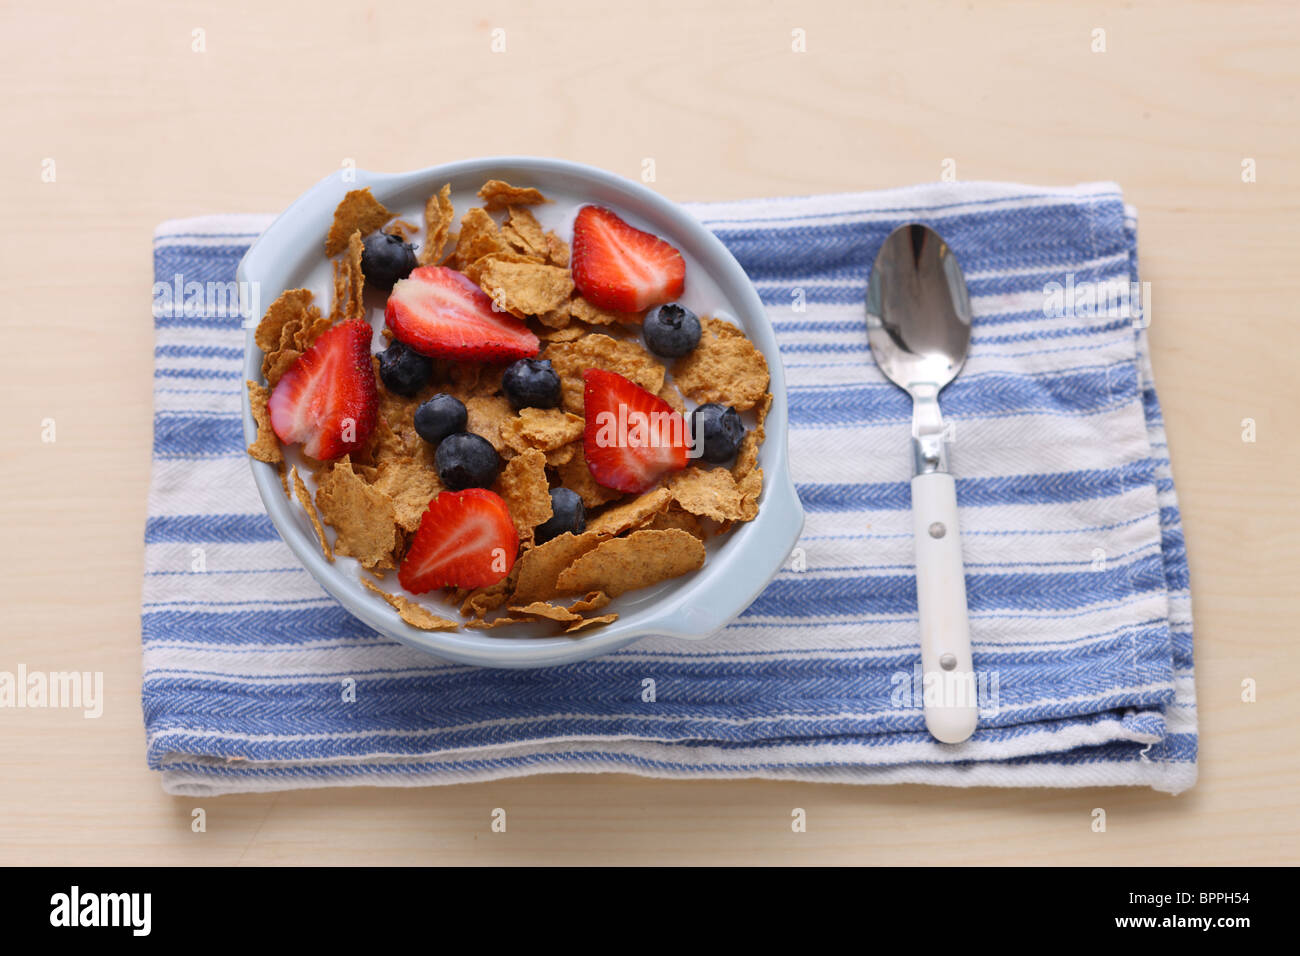 Cereal with strawberries and blueberries - Stock Image